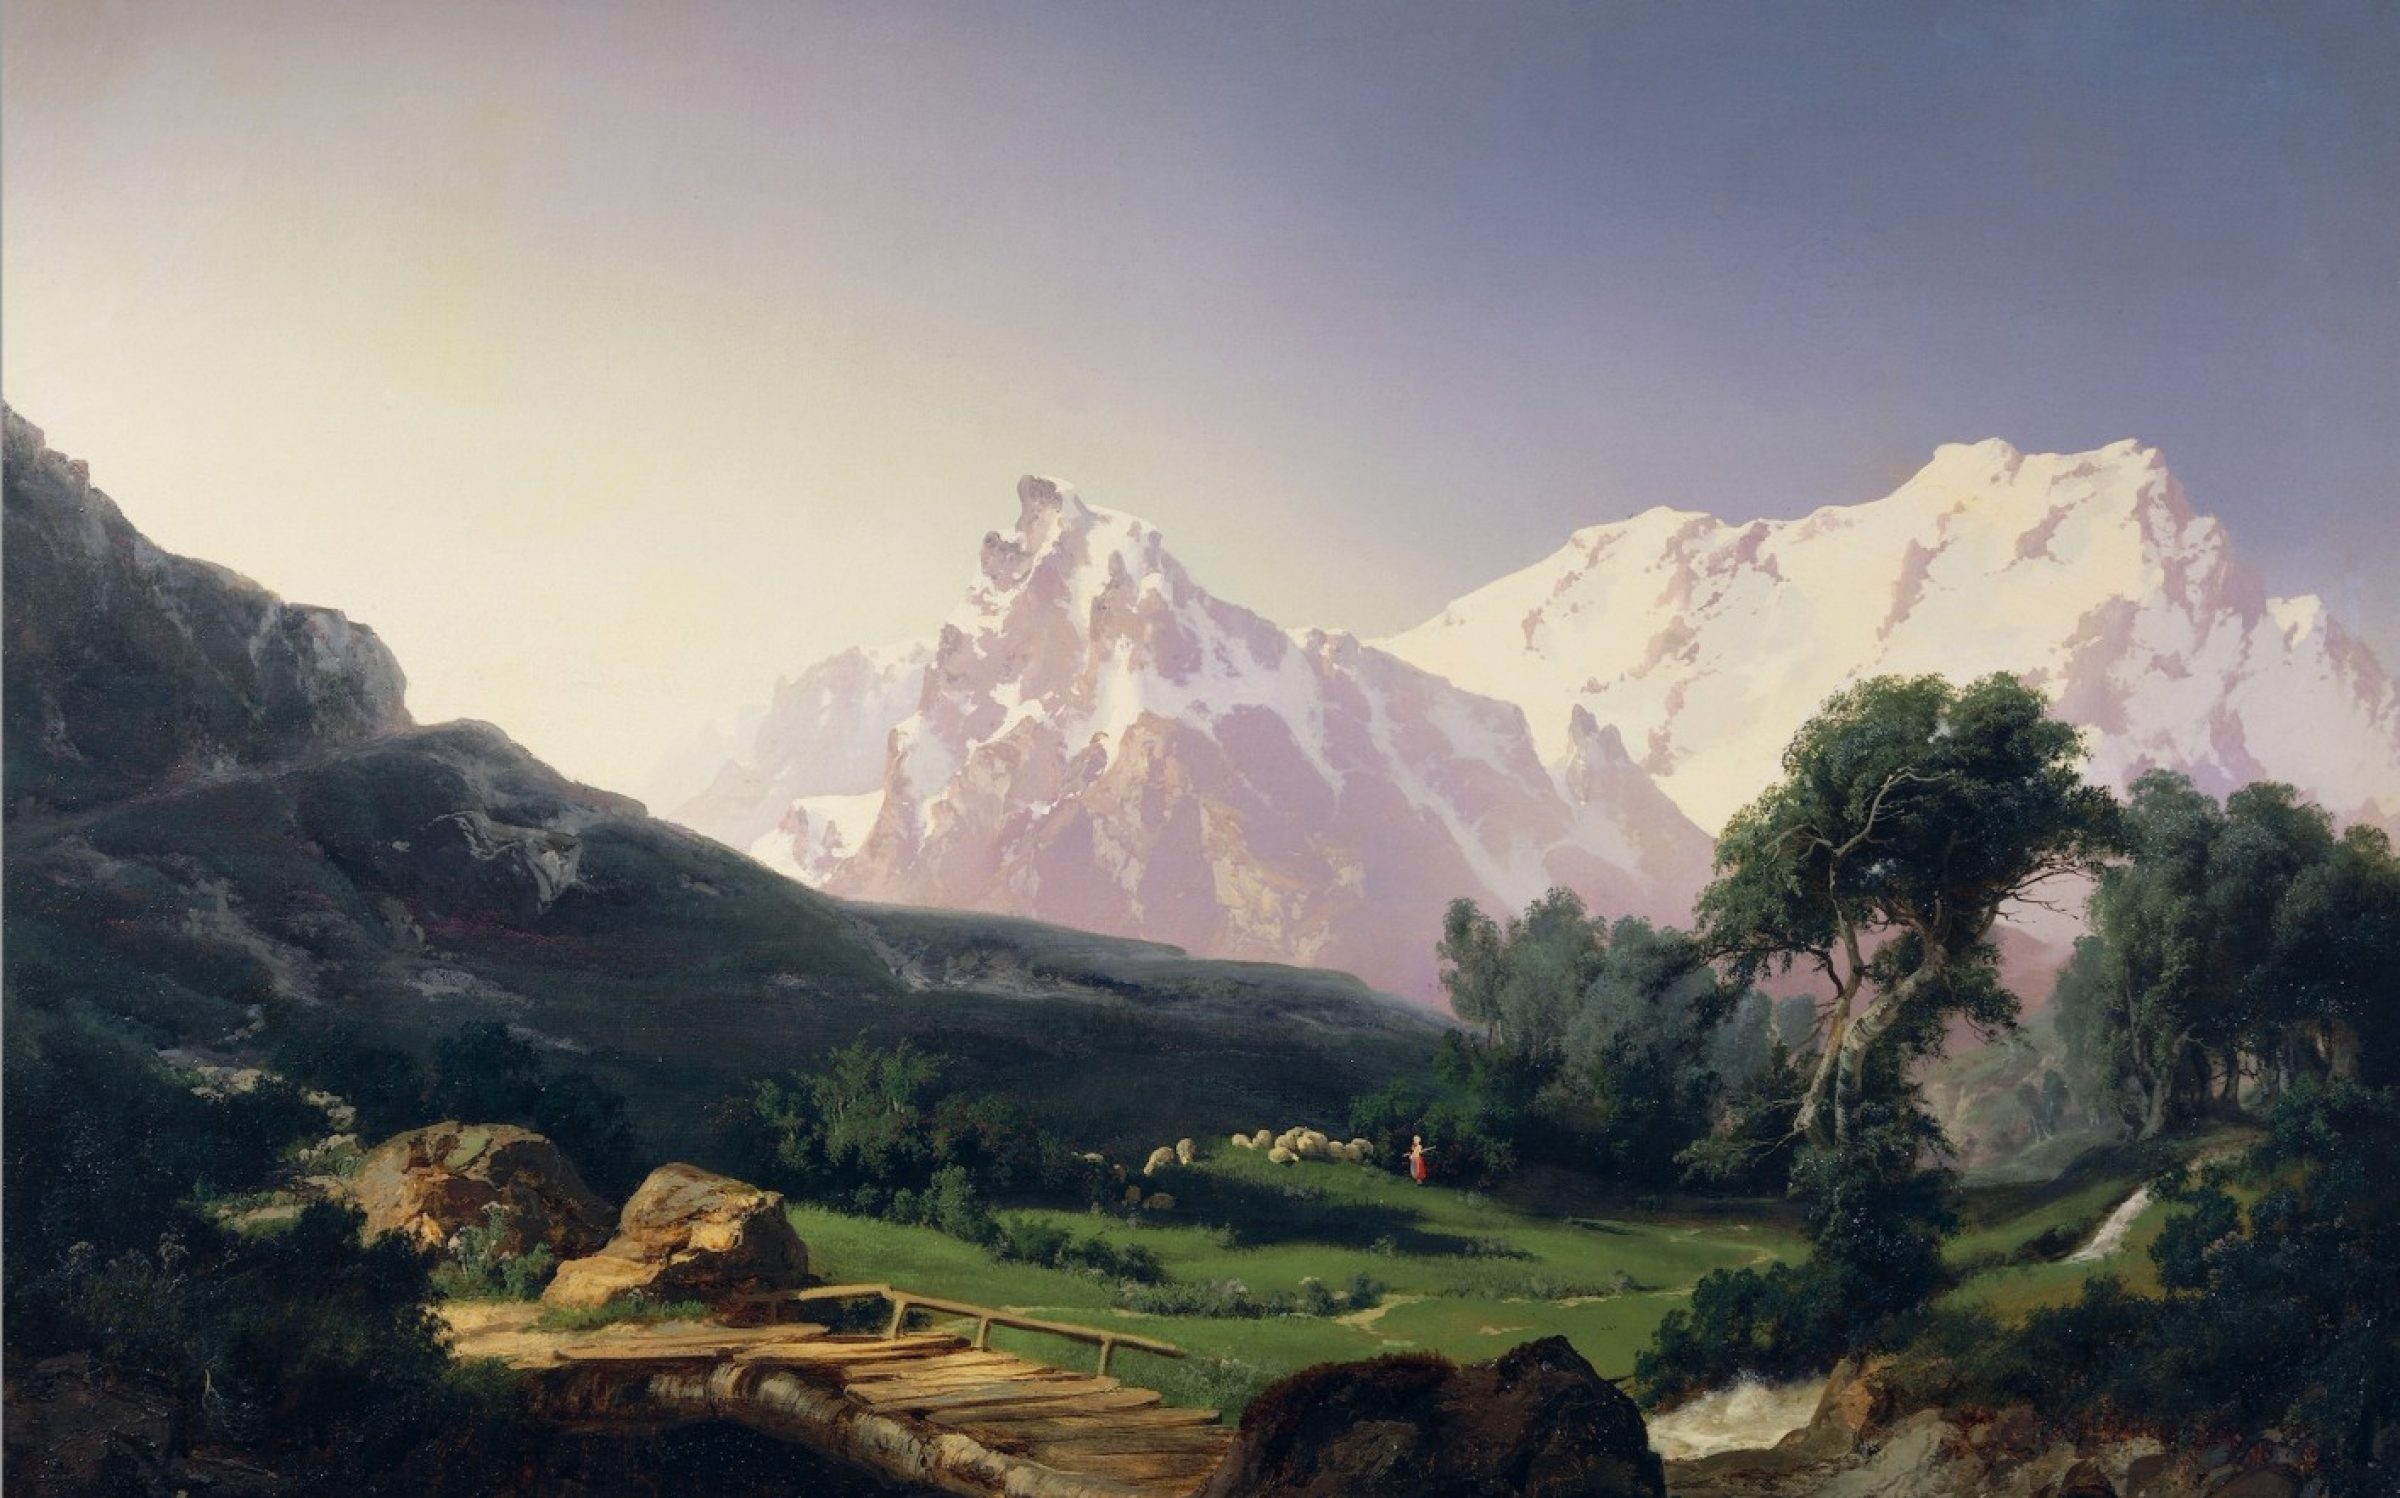 An Arcadian painting of the Alpine peaks by Giuseppe Camino (1818-1890). Credit: DeAgostini / Getty Images.